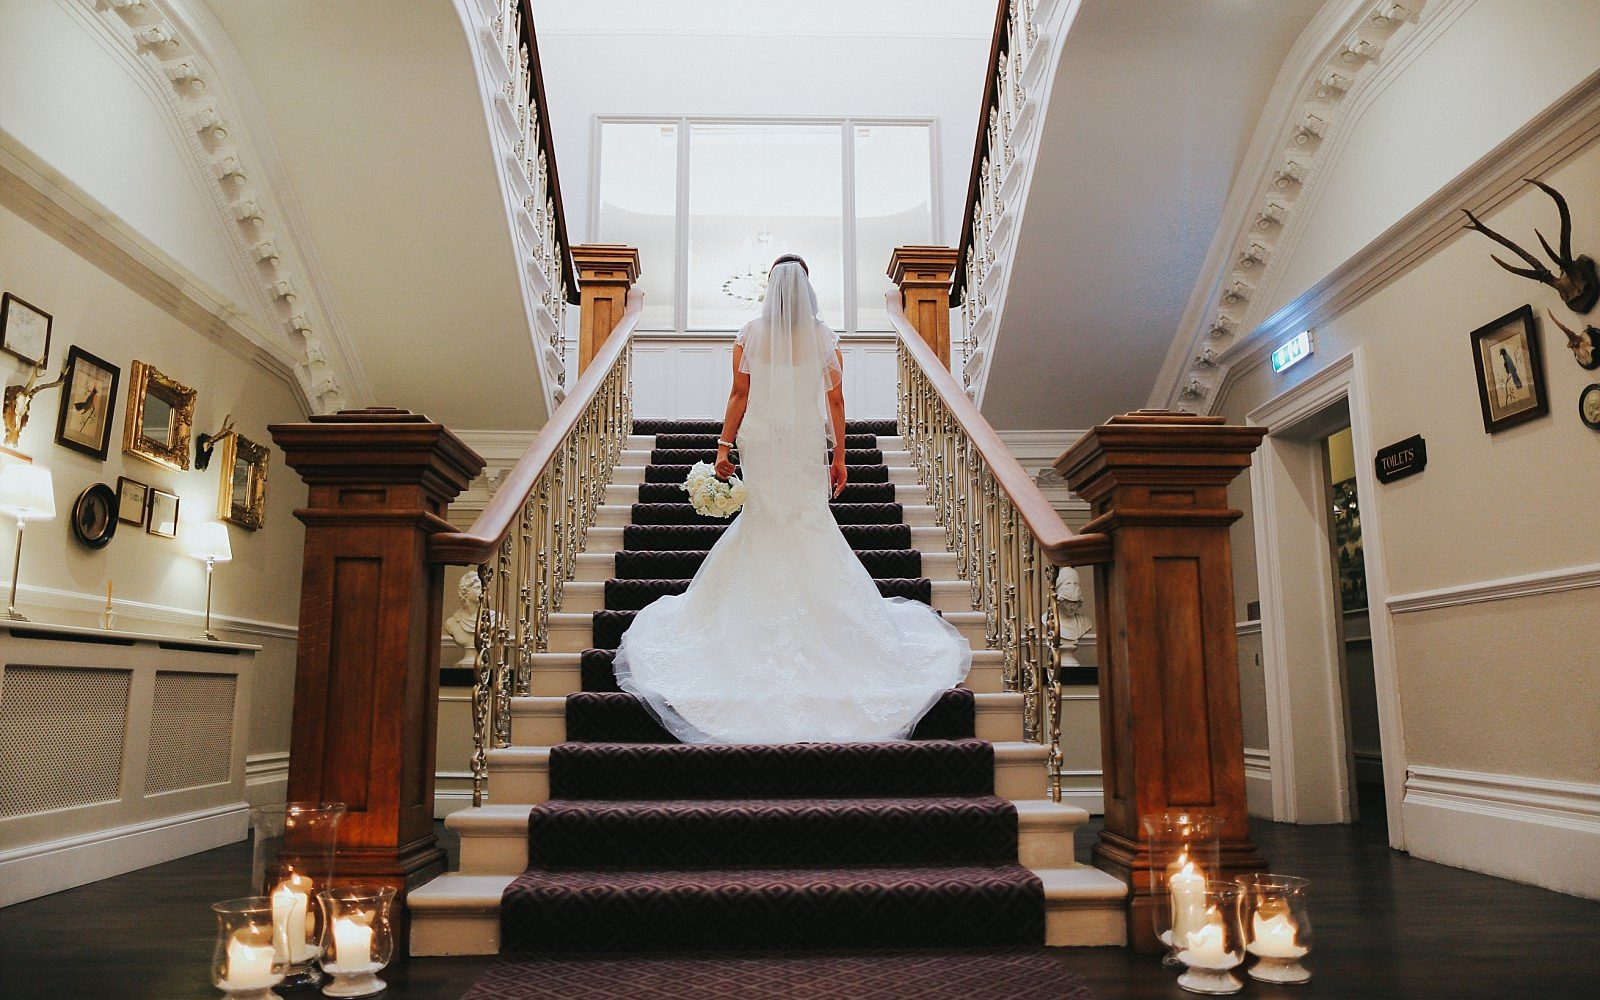 Ahfield-House-Wedding-Venue-Photography-Photographer-Wigan-embee-Photography-Matt-Burgess_0148